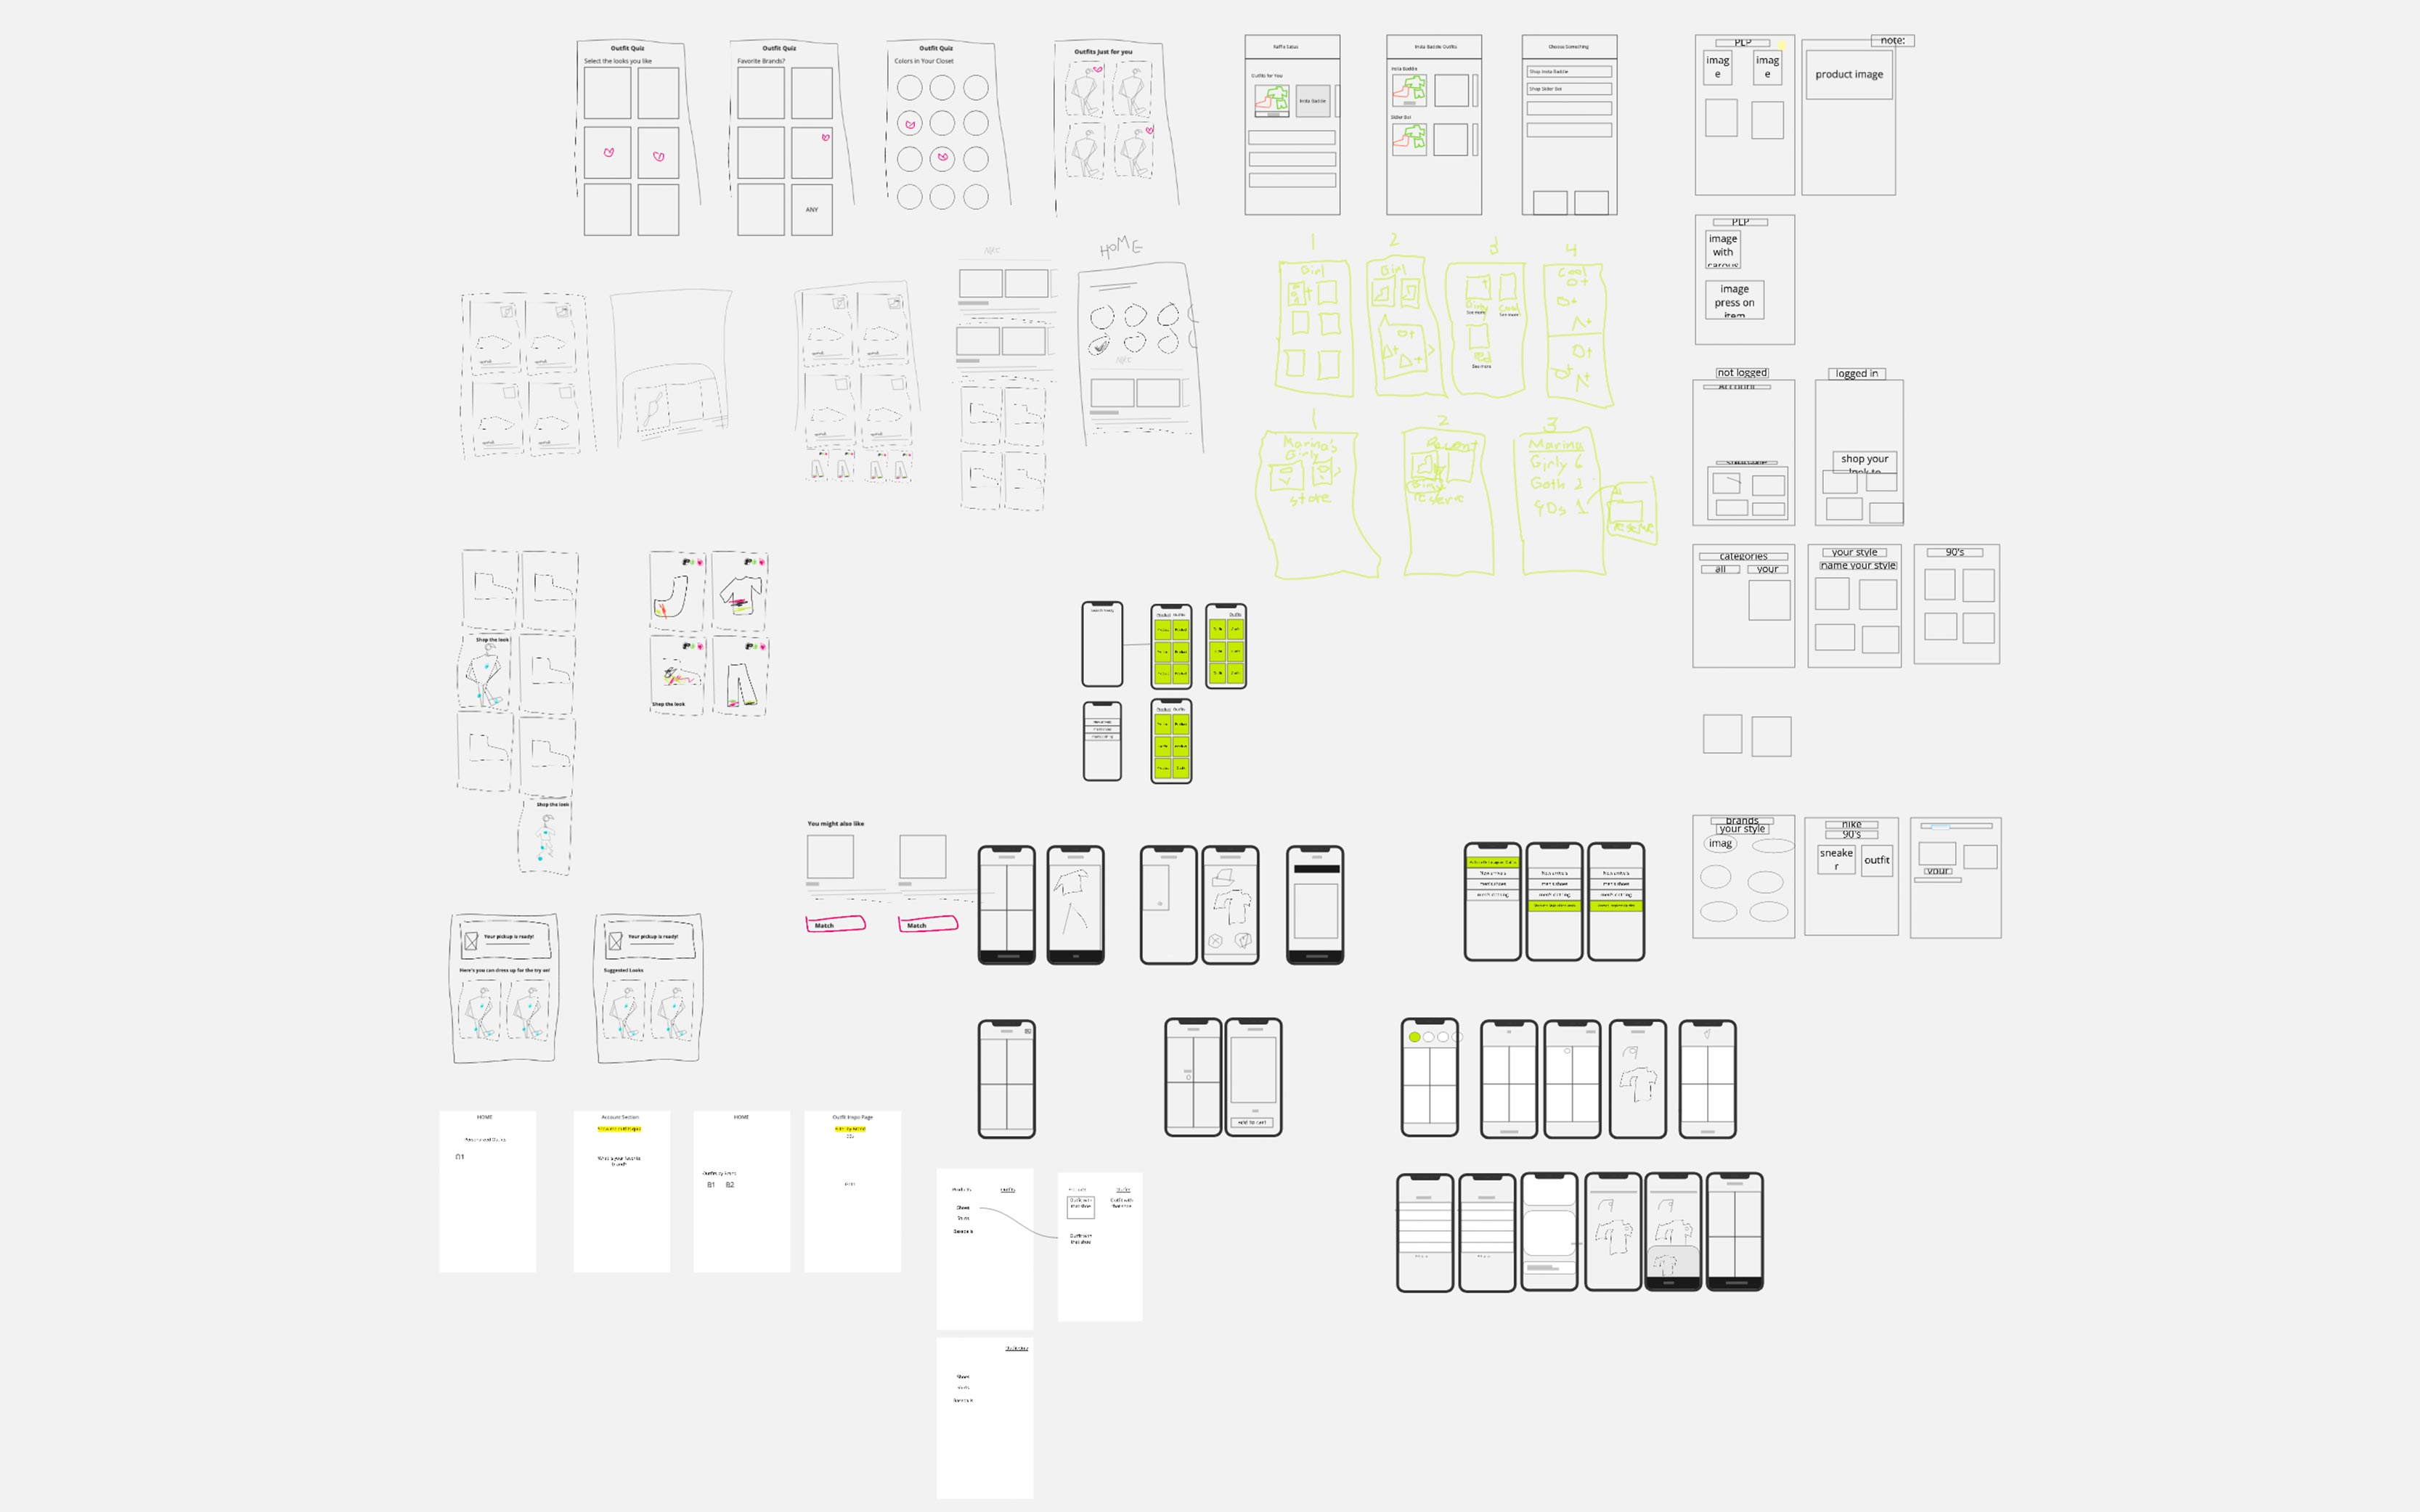 A snapshot of my sketch playground with many design ideas and iterations.